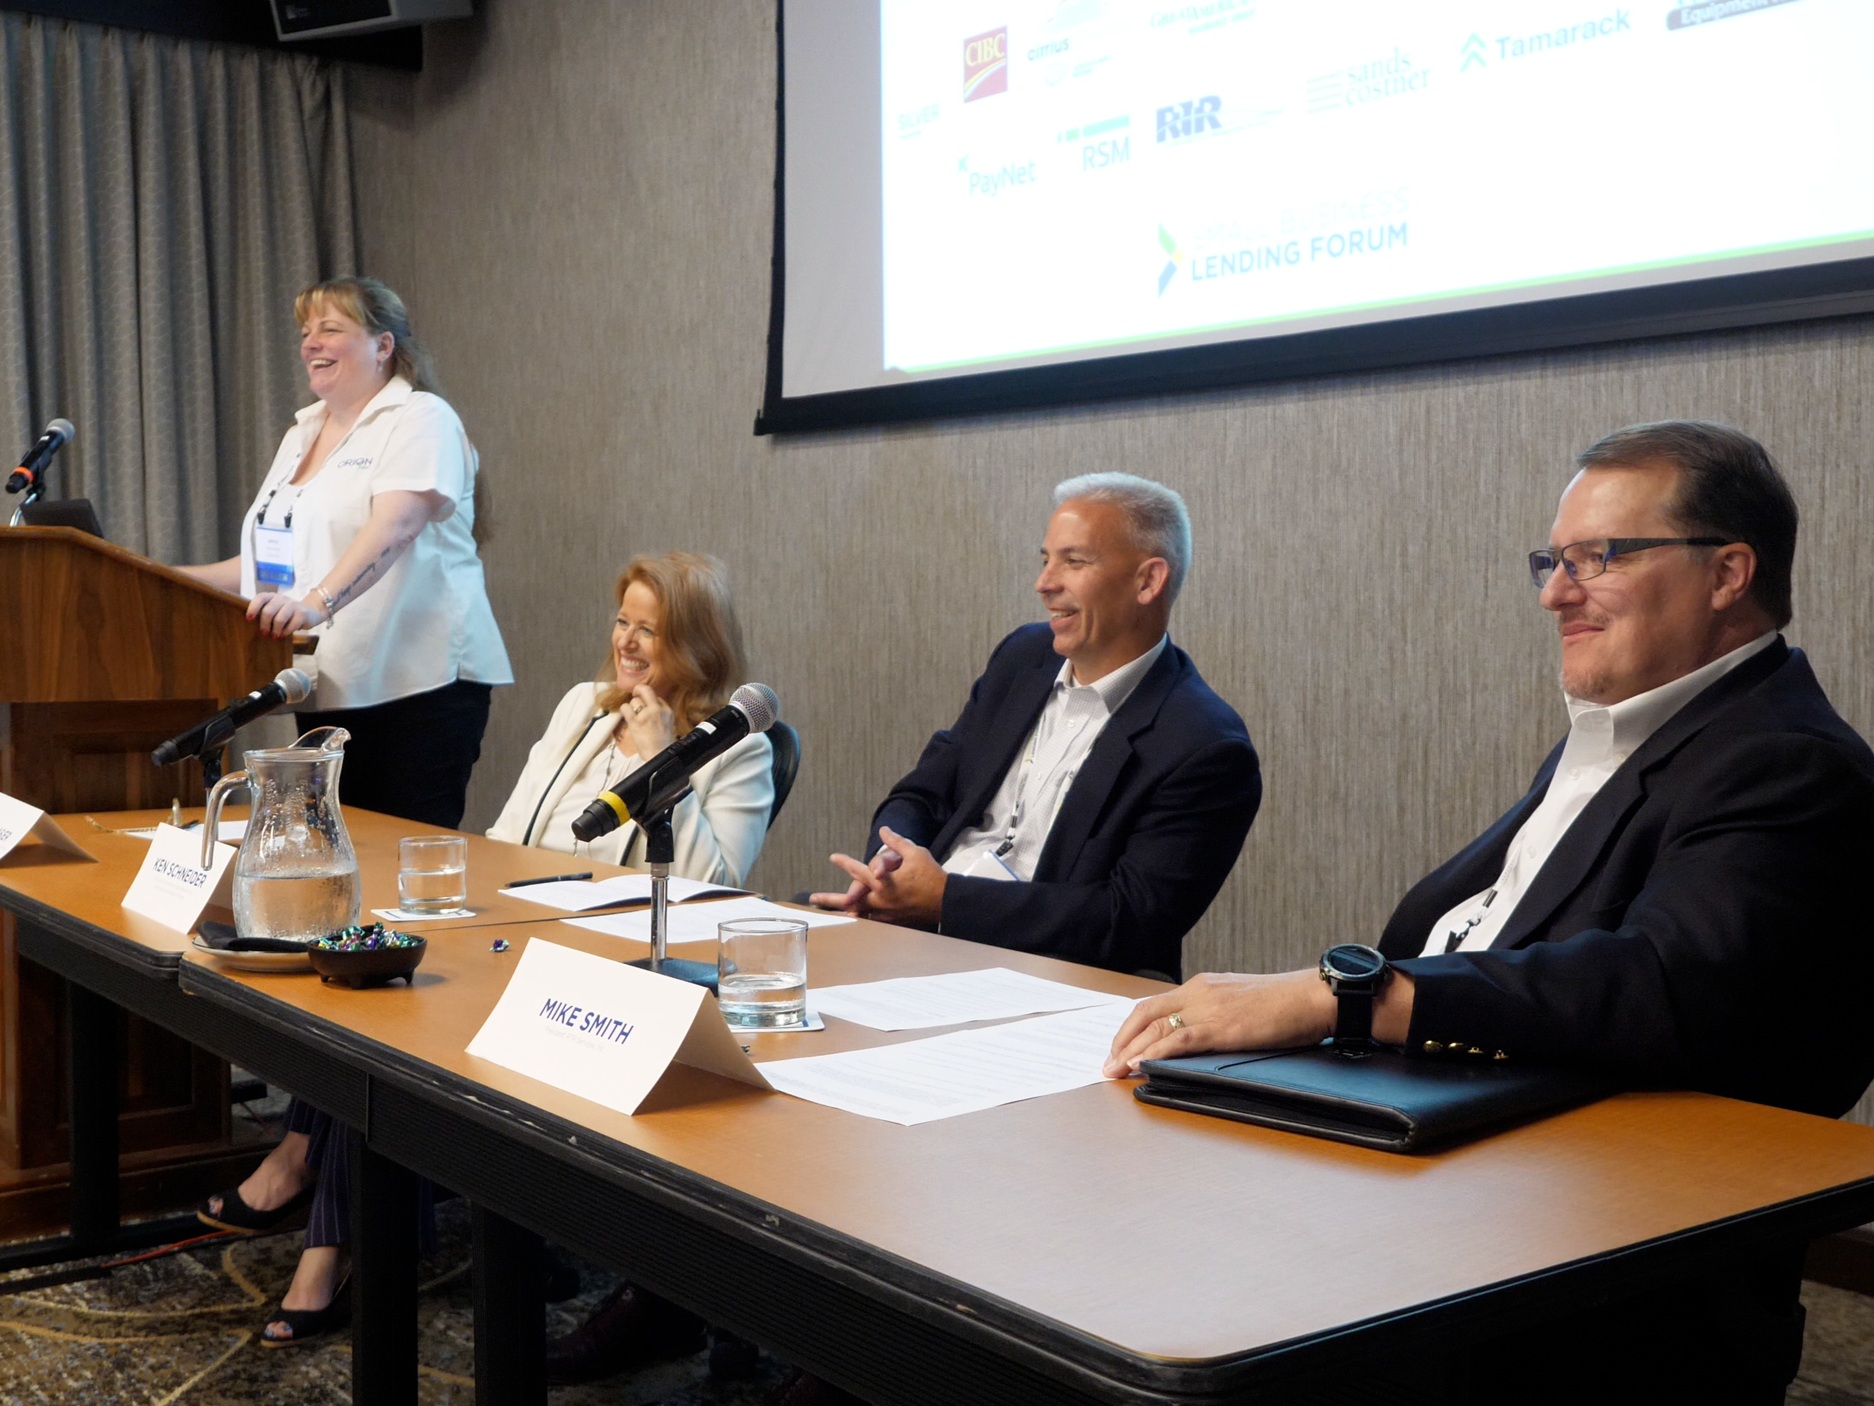 Moderator (Far Left)   : Jenny Wood, SVP, Client Services, Orion First     Panelists (L-R)   : Lori Frasier, SVP, Strategy and Performance Management, Key Equipment Finance; Ken Schneider, SVP, Business Development and Underwriting, Great American Insurance Company; Mike Smith, President, RTR Services